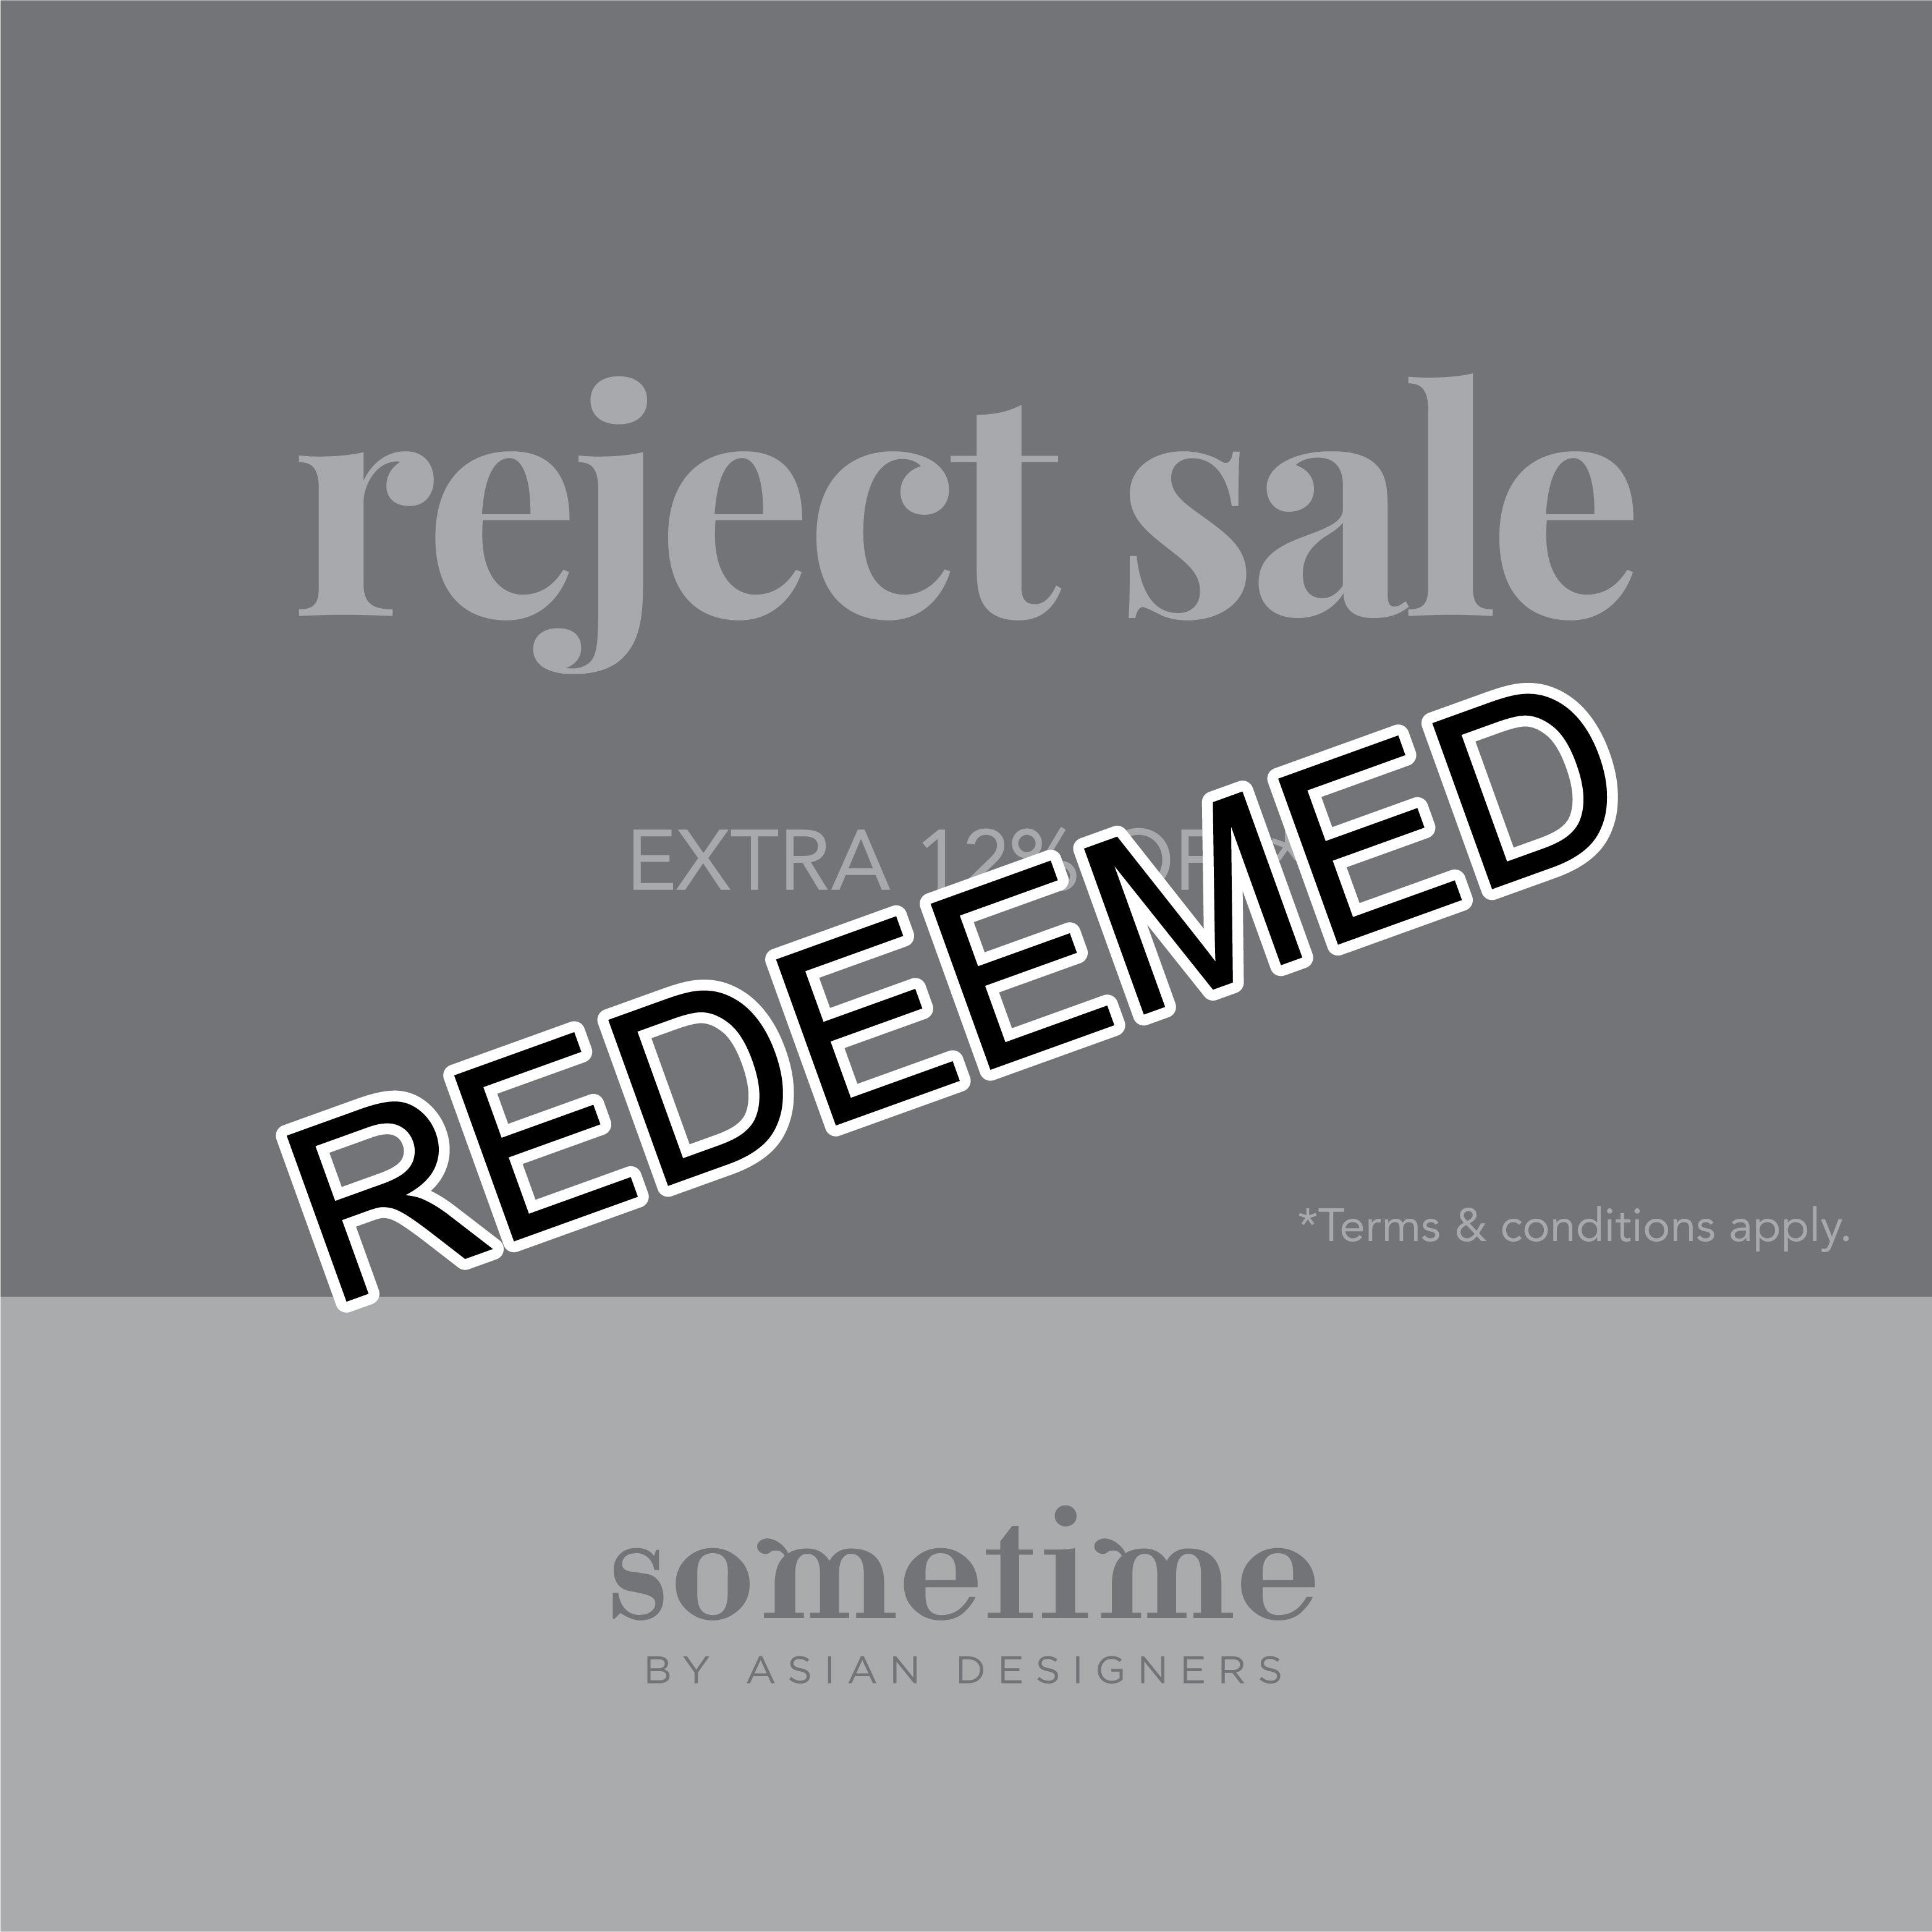 Reject Sale promo code #2